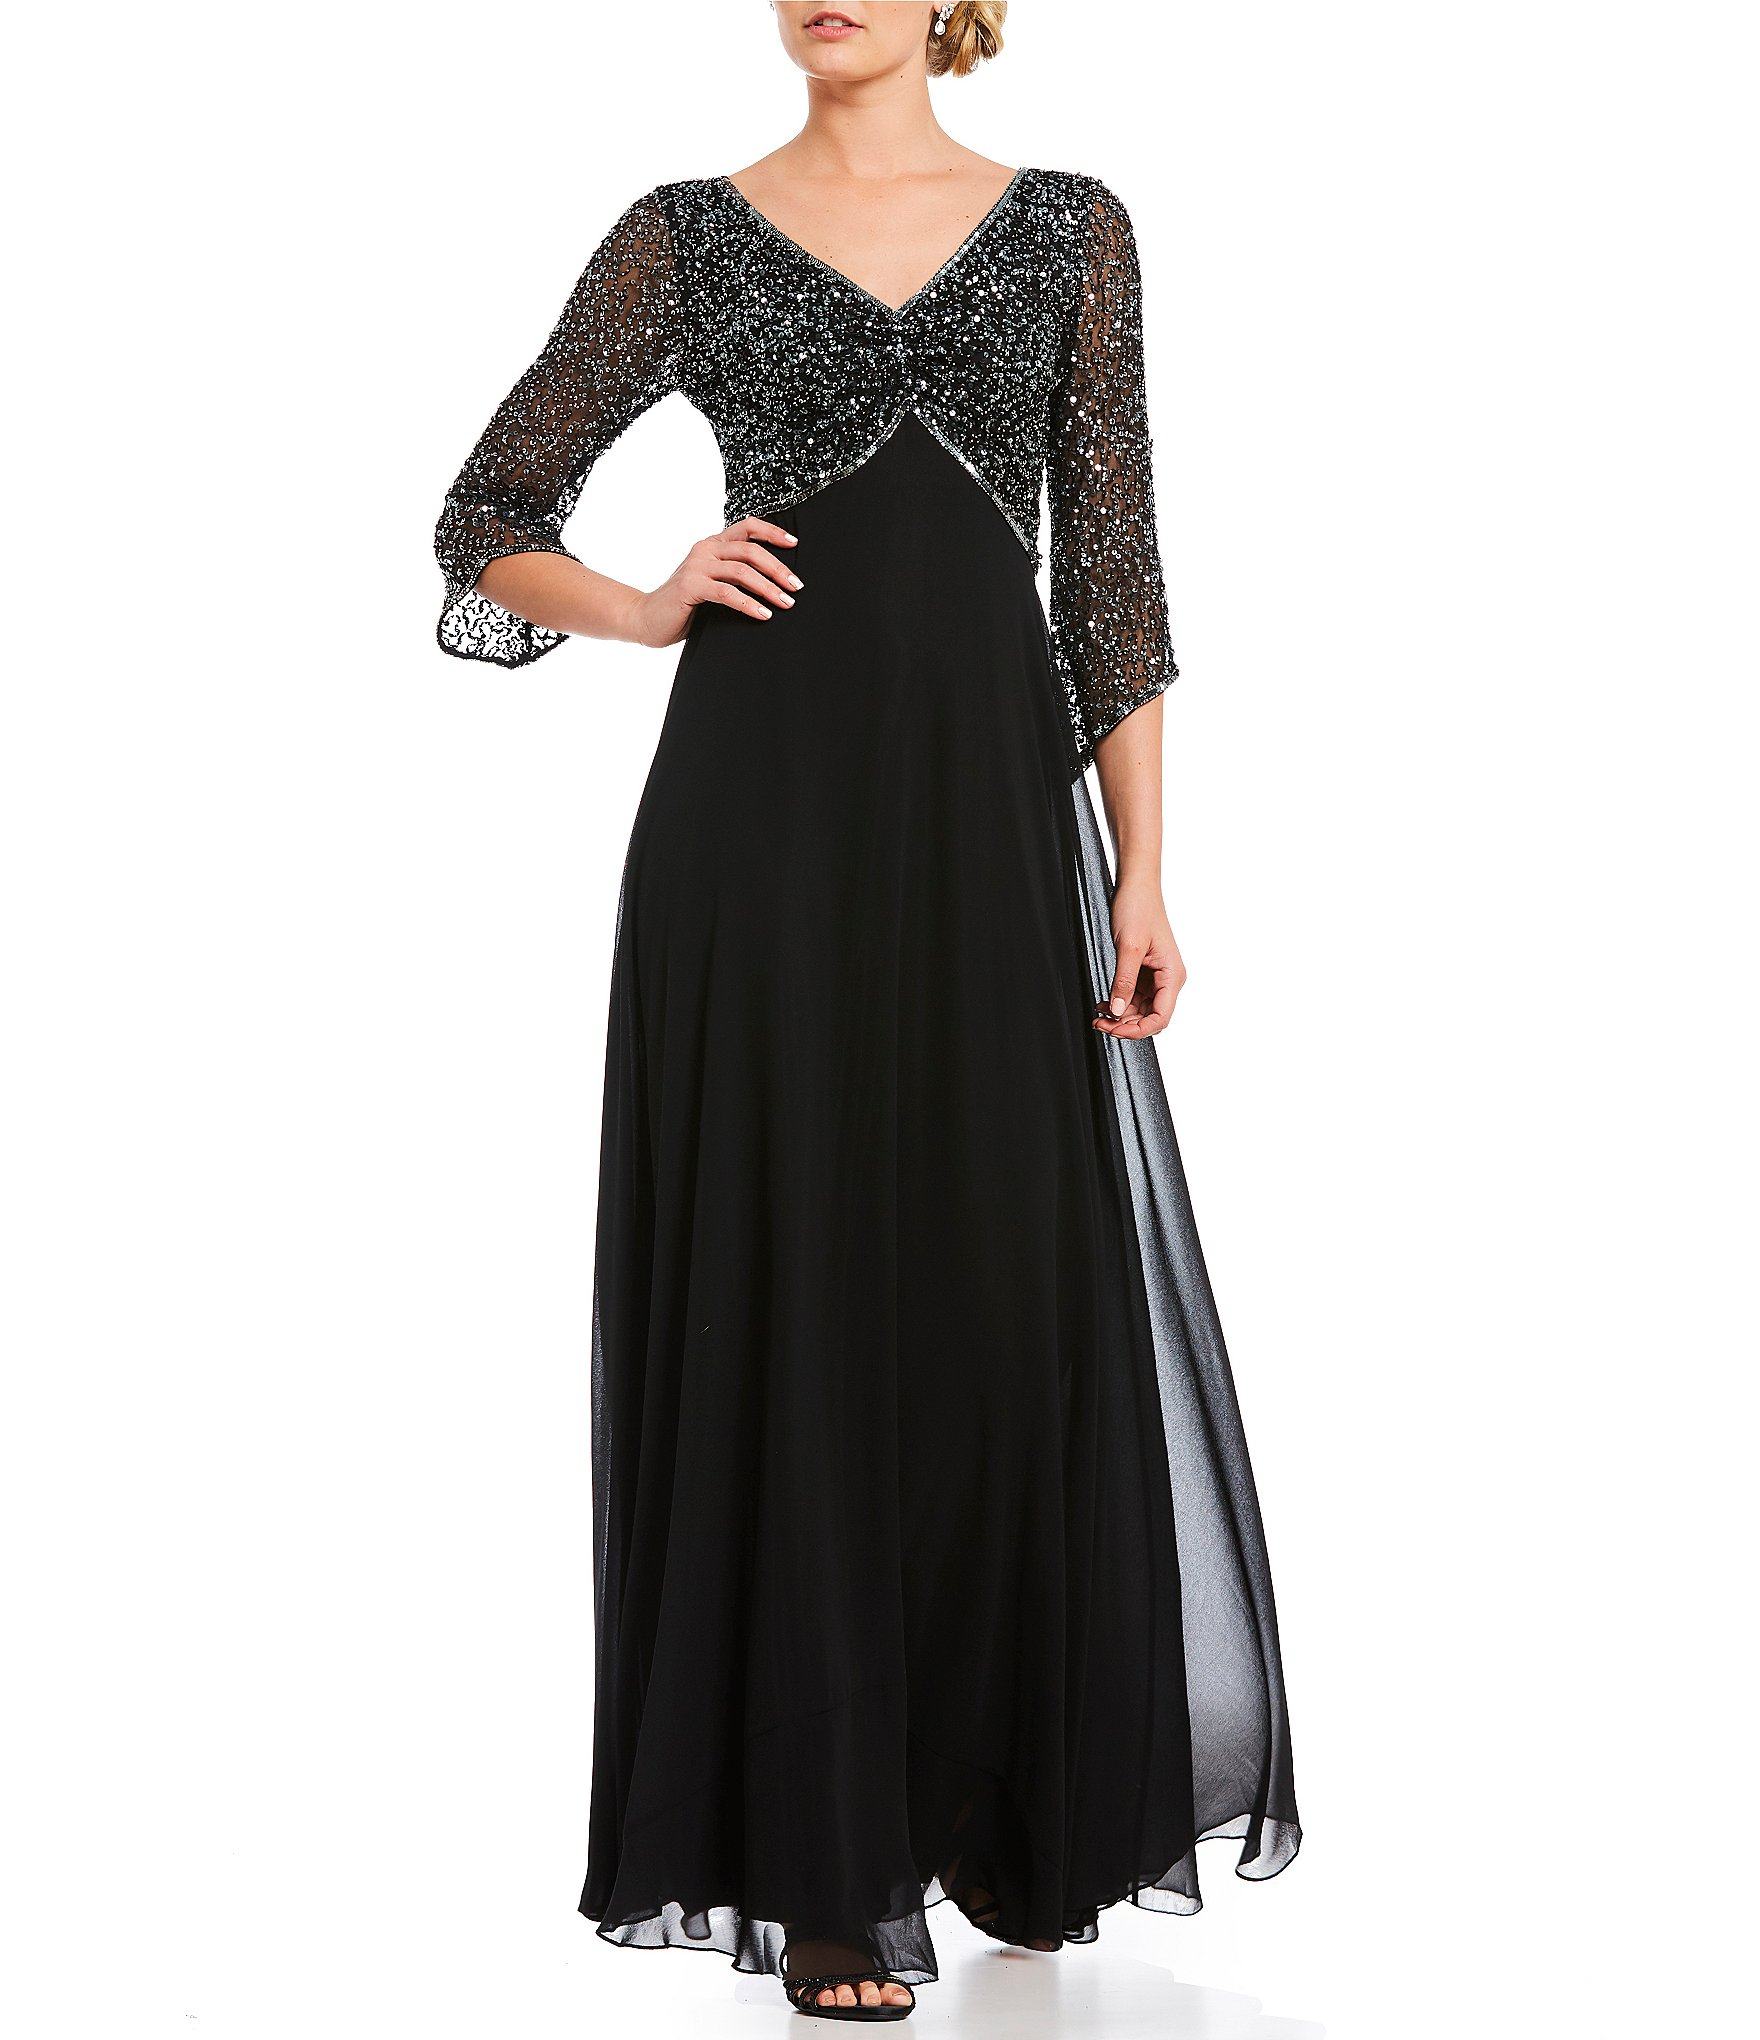 Jkara Mother of the Bride Dresses & Gowns | Dillards